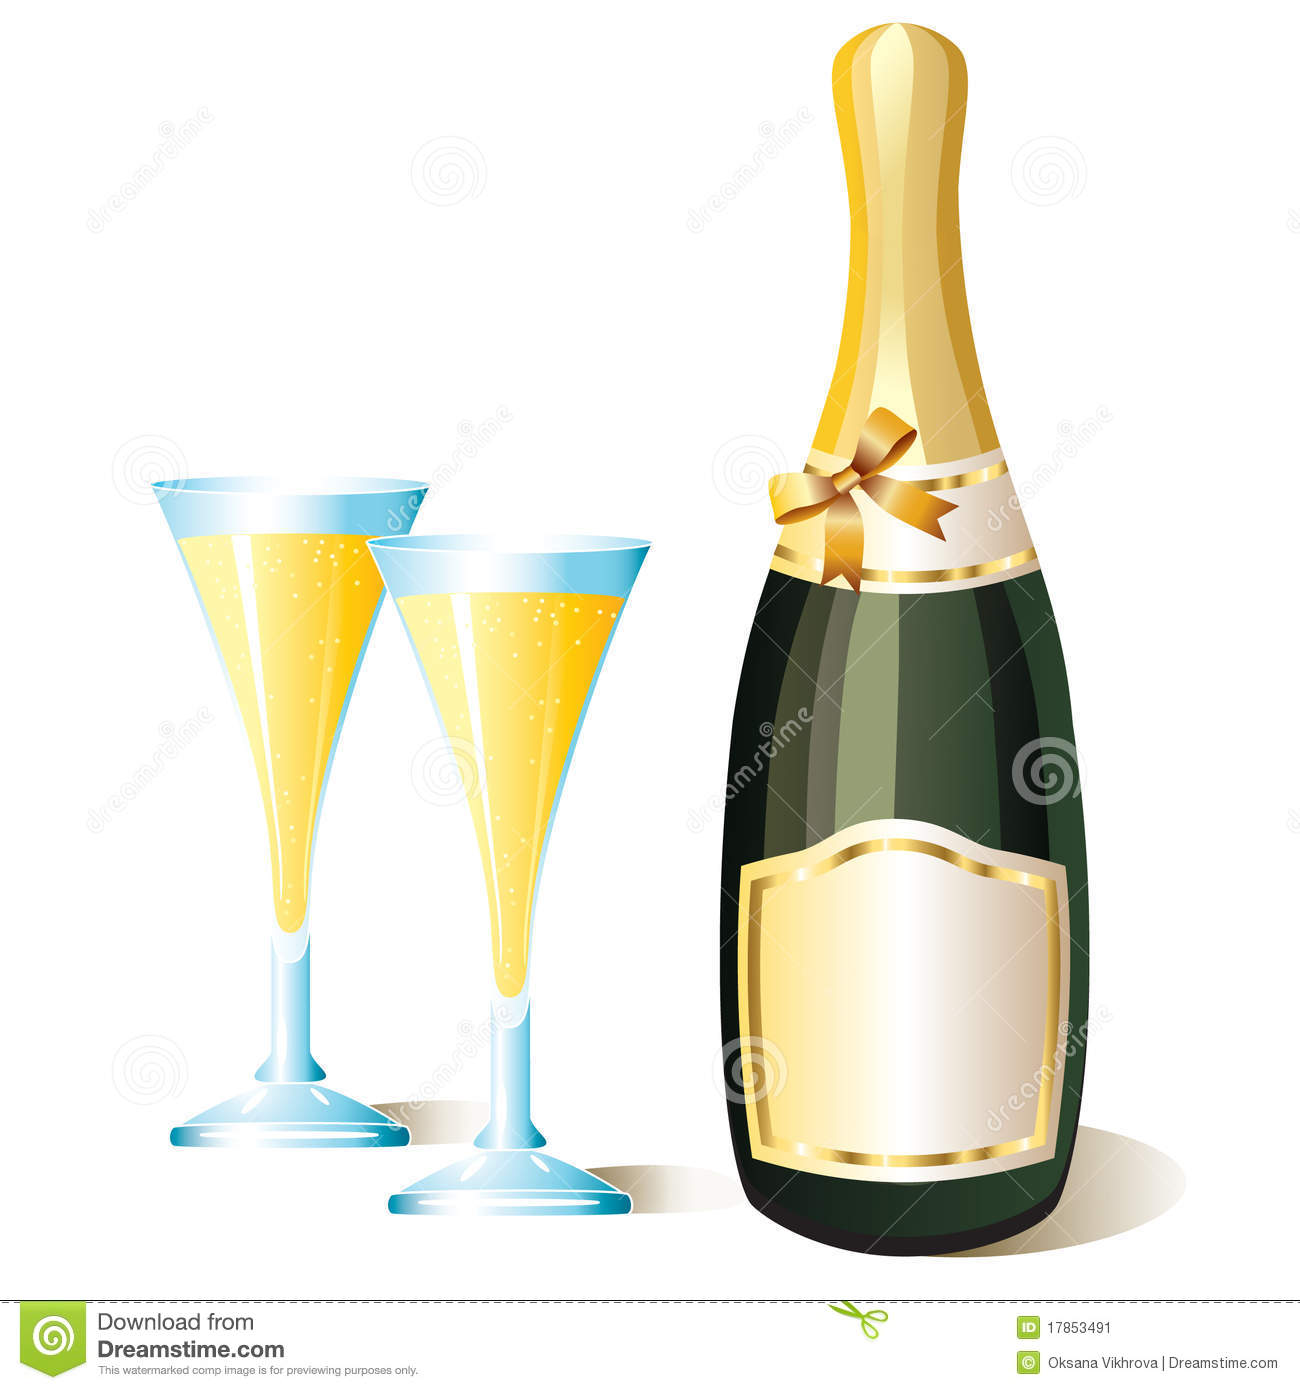 A bottle of champagne and glasses.